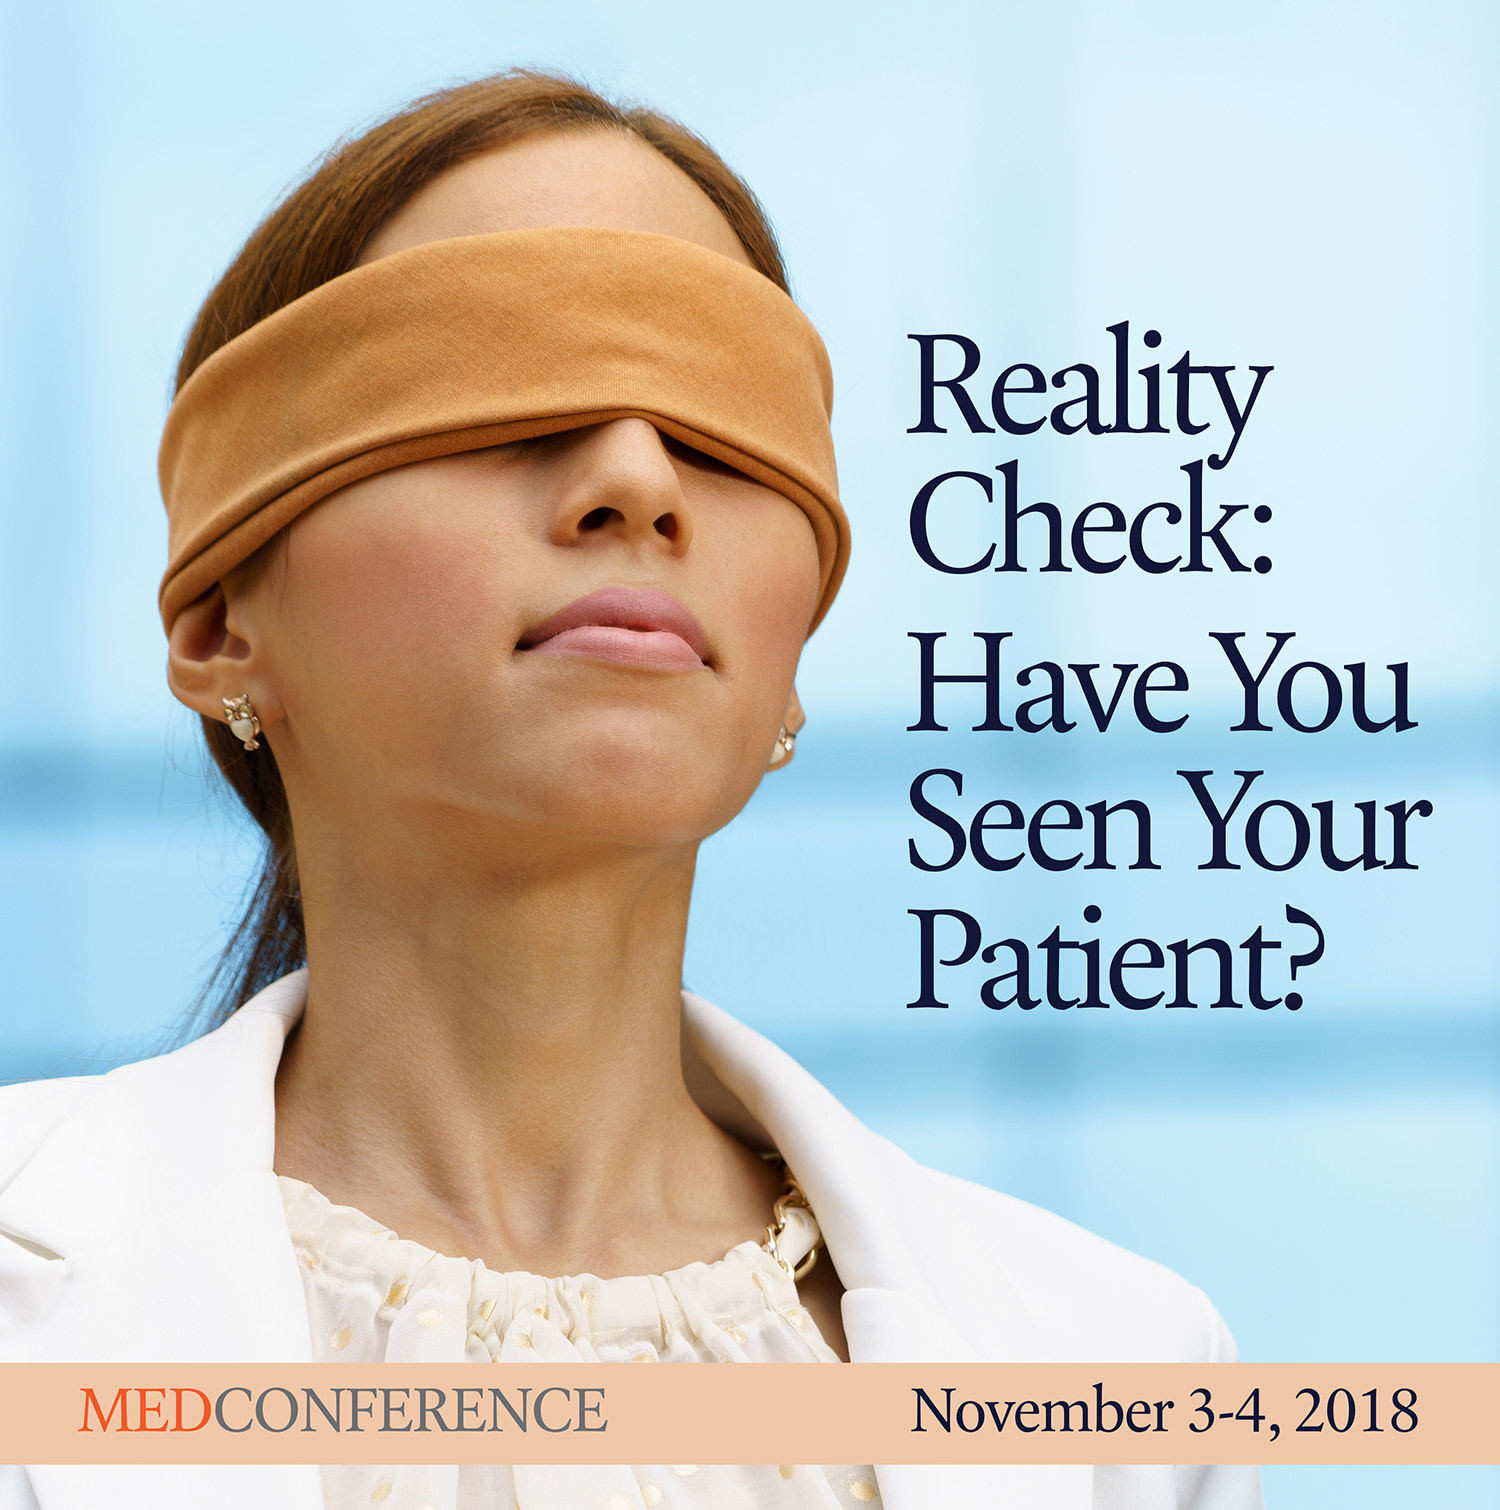 Reality Check: Have You Seen Your Patient? | MedConference 2018